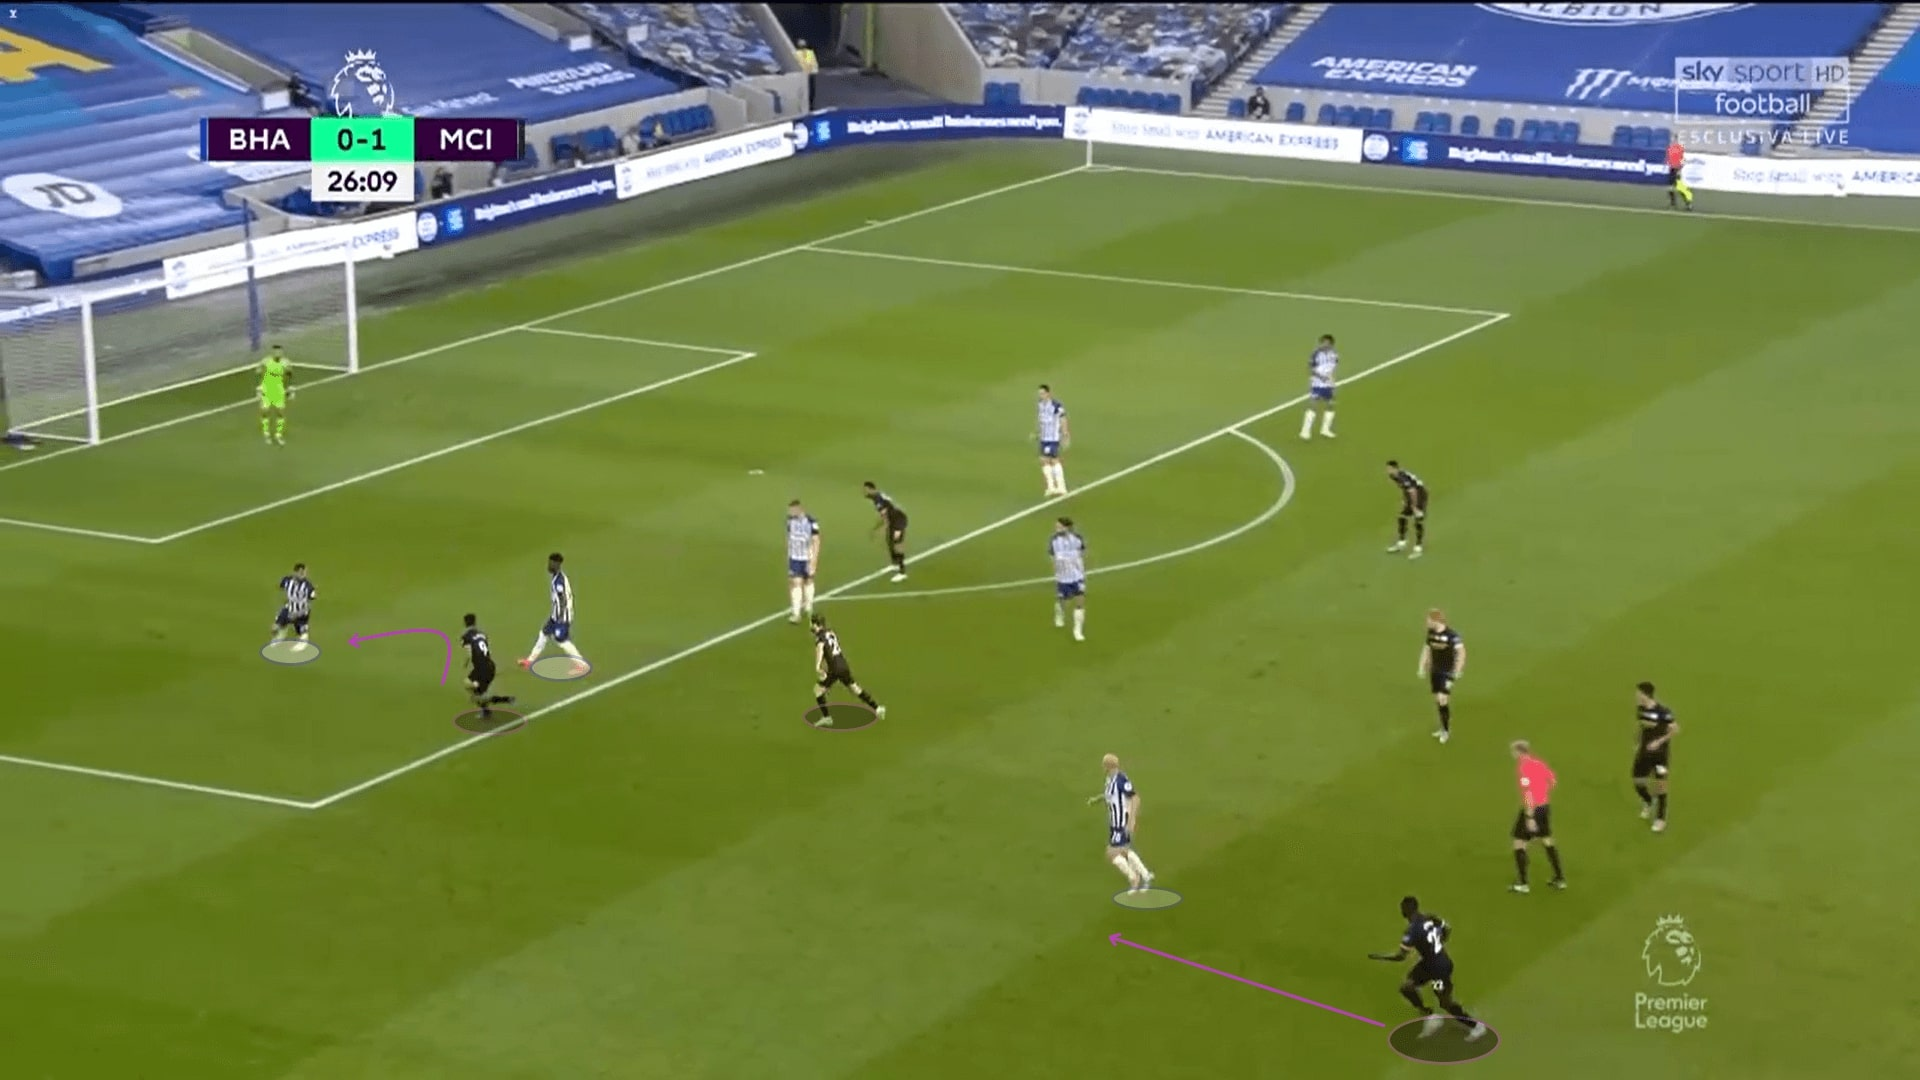 Premier League 2019/20: Brighton vs Manchester City - tactical analysis tactics